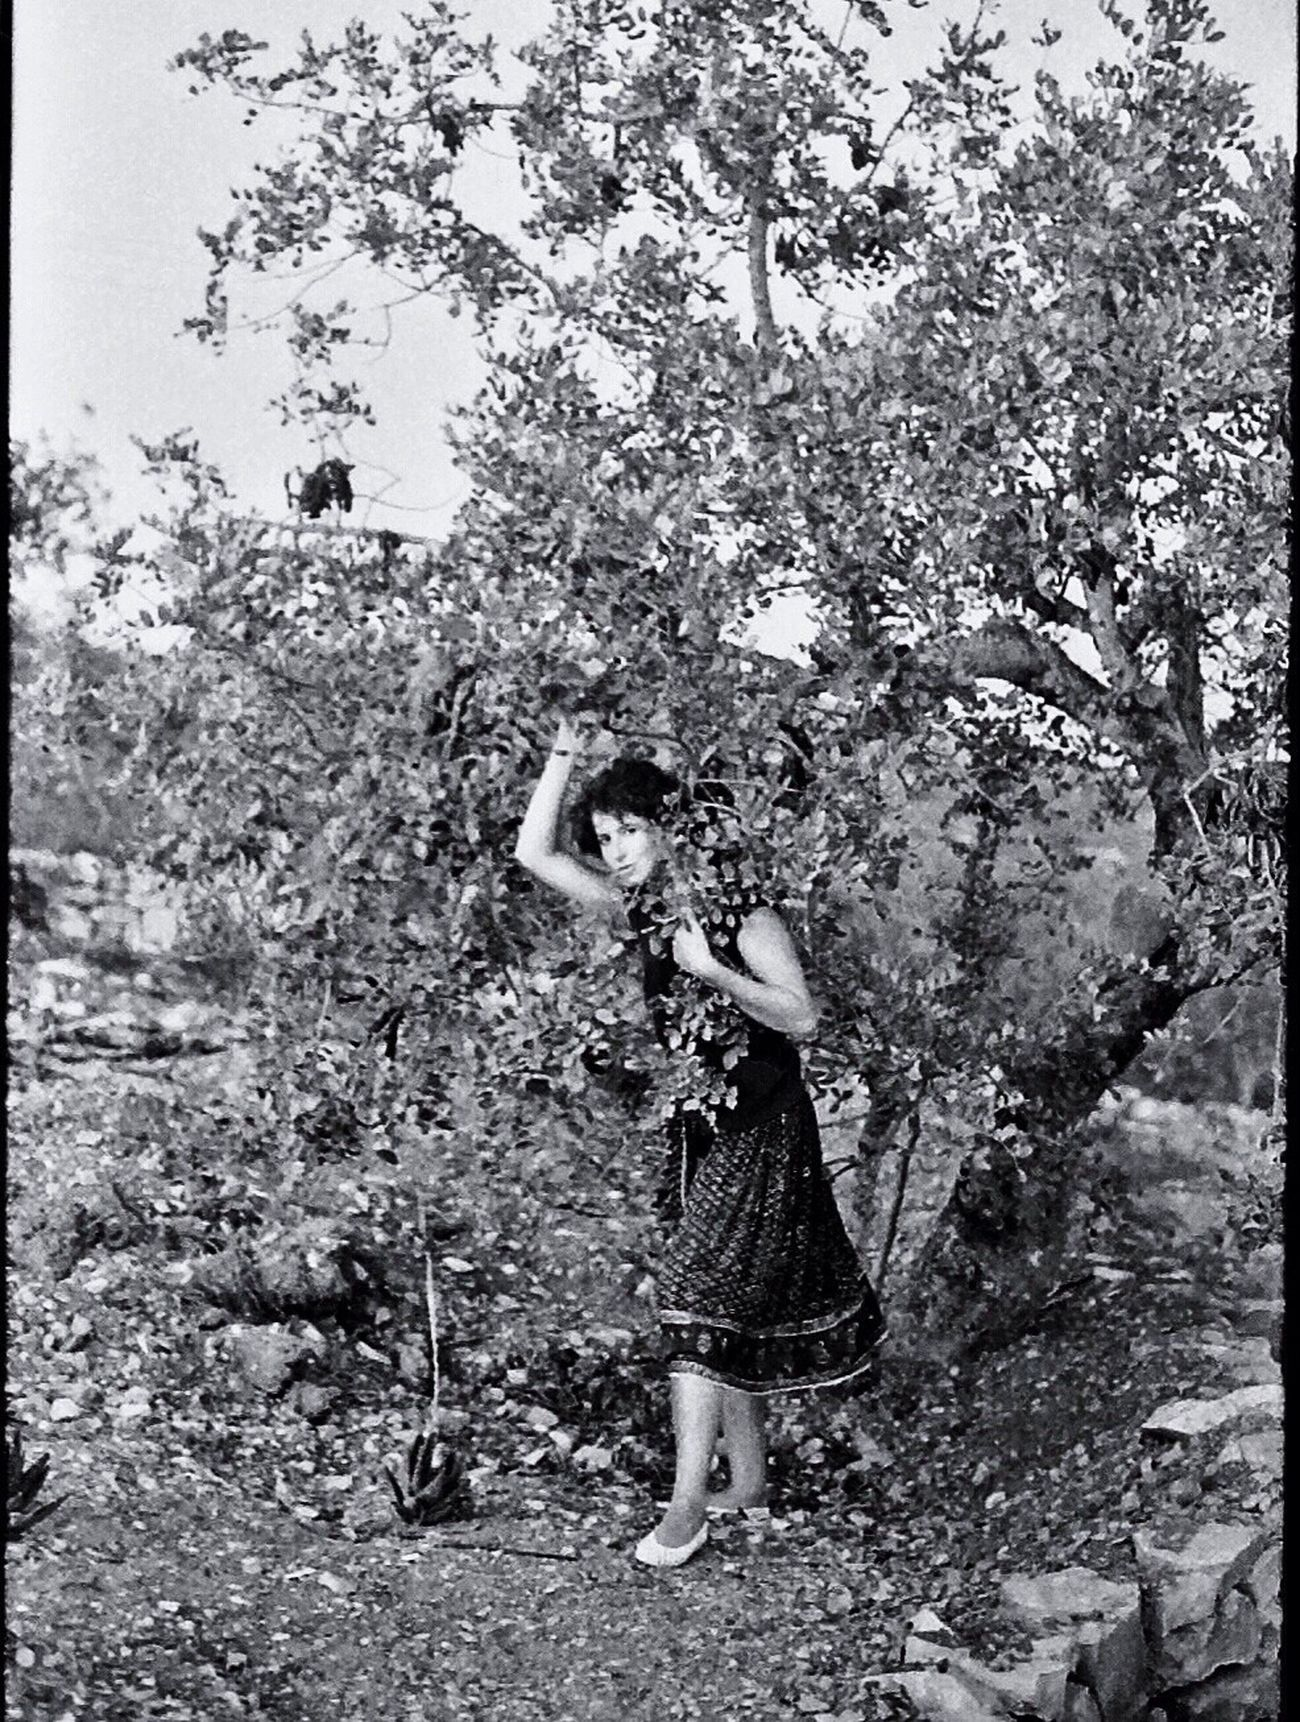 Koduckgirl One Person 1980s Nature Blk N Wht Portugal Nikon FE Tree